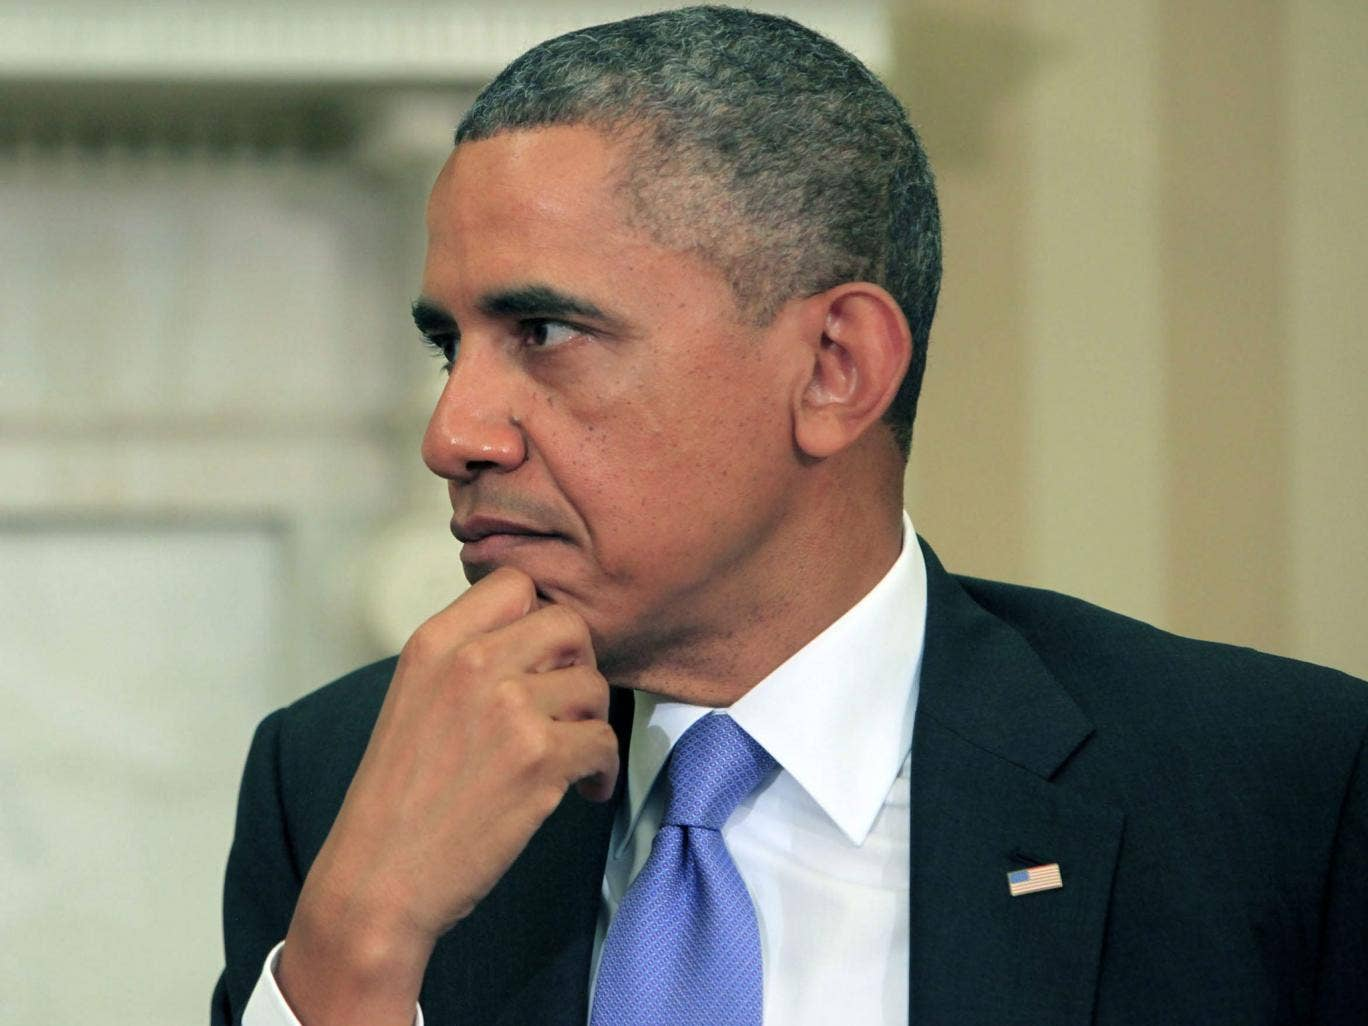 Even though President Obama spoke out about racism, it's still a conversation that won't go anywhere